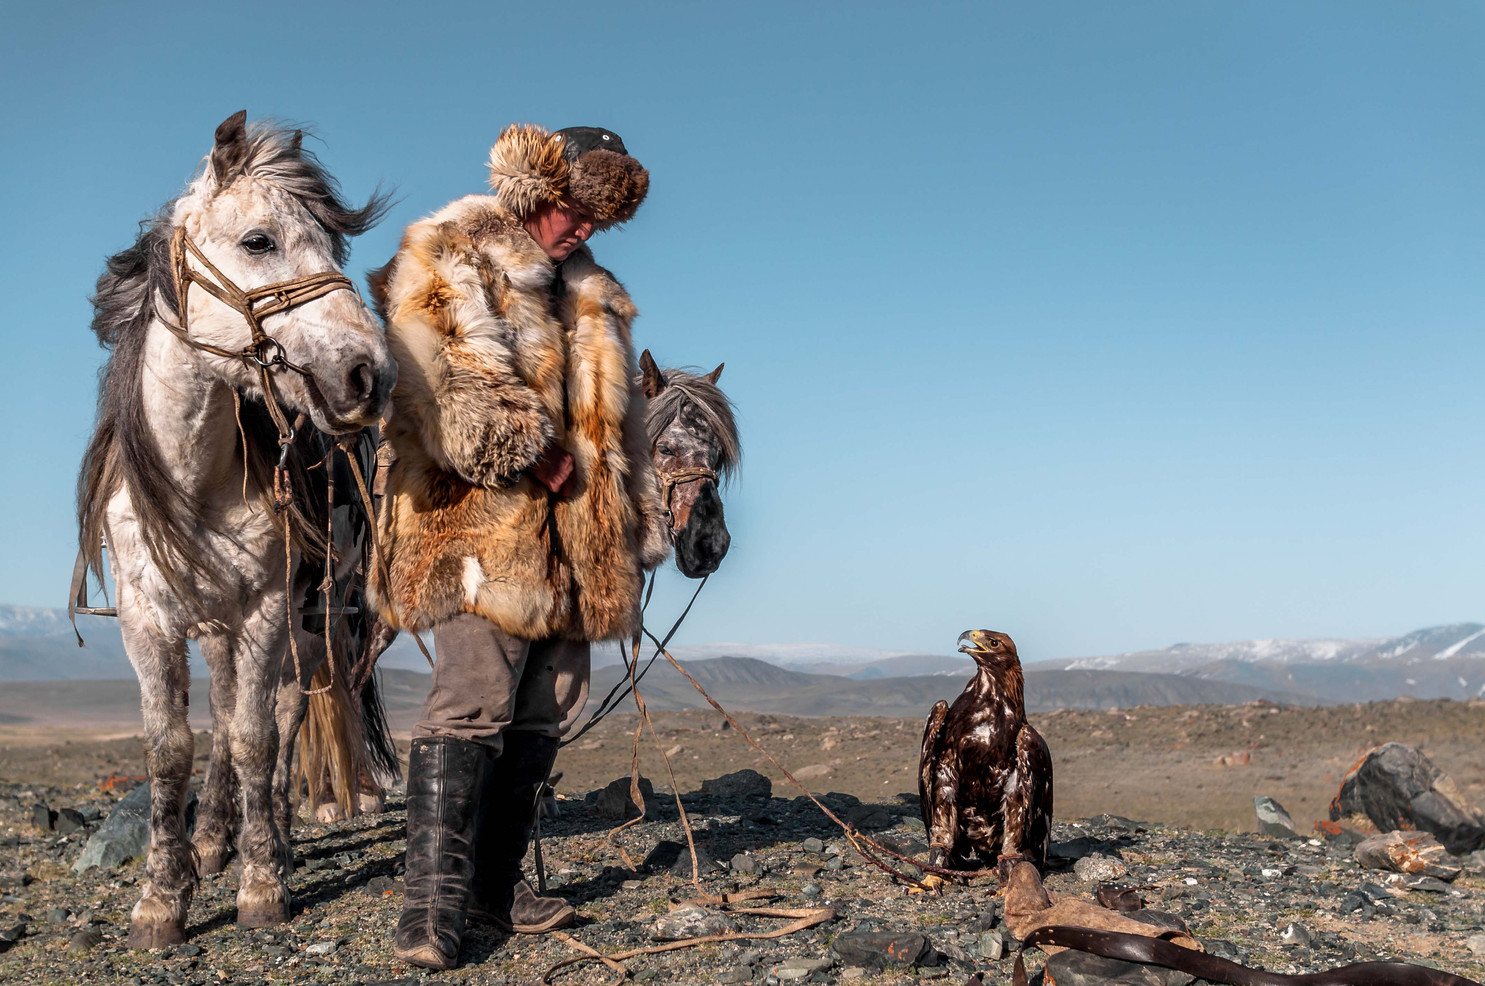 28 year old eagle hunter Esen with his horses and golden eagle. Living high in the Altai Mountains of western Mongolia, him and his family are among the last of the thousand year tradition of eagle hunting.